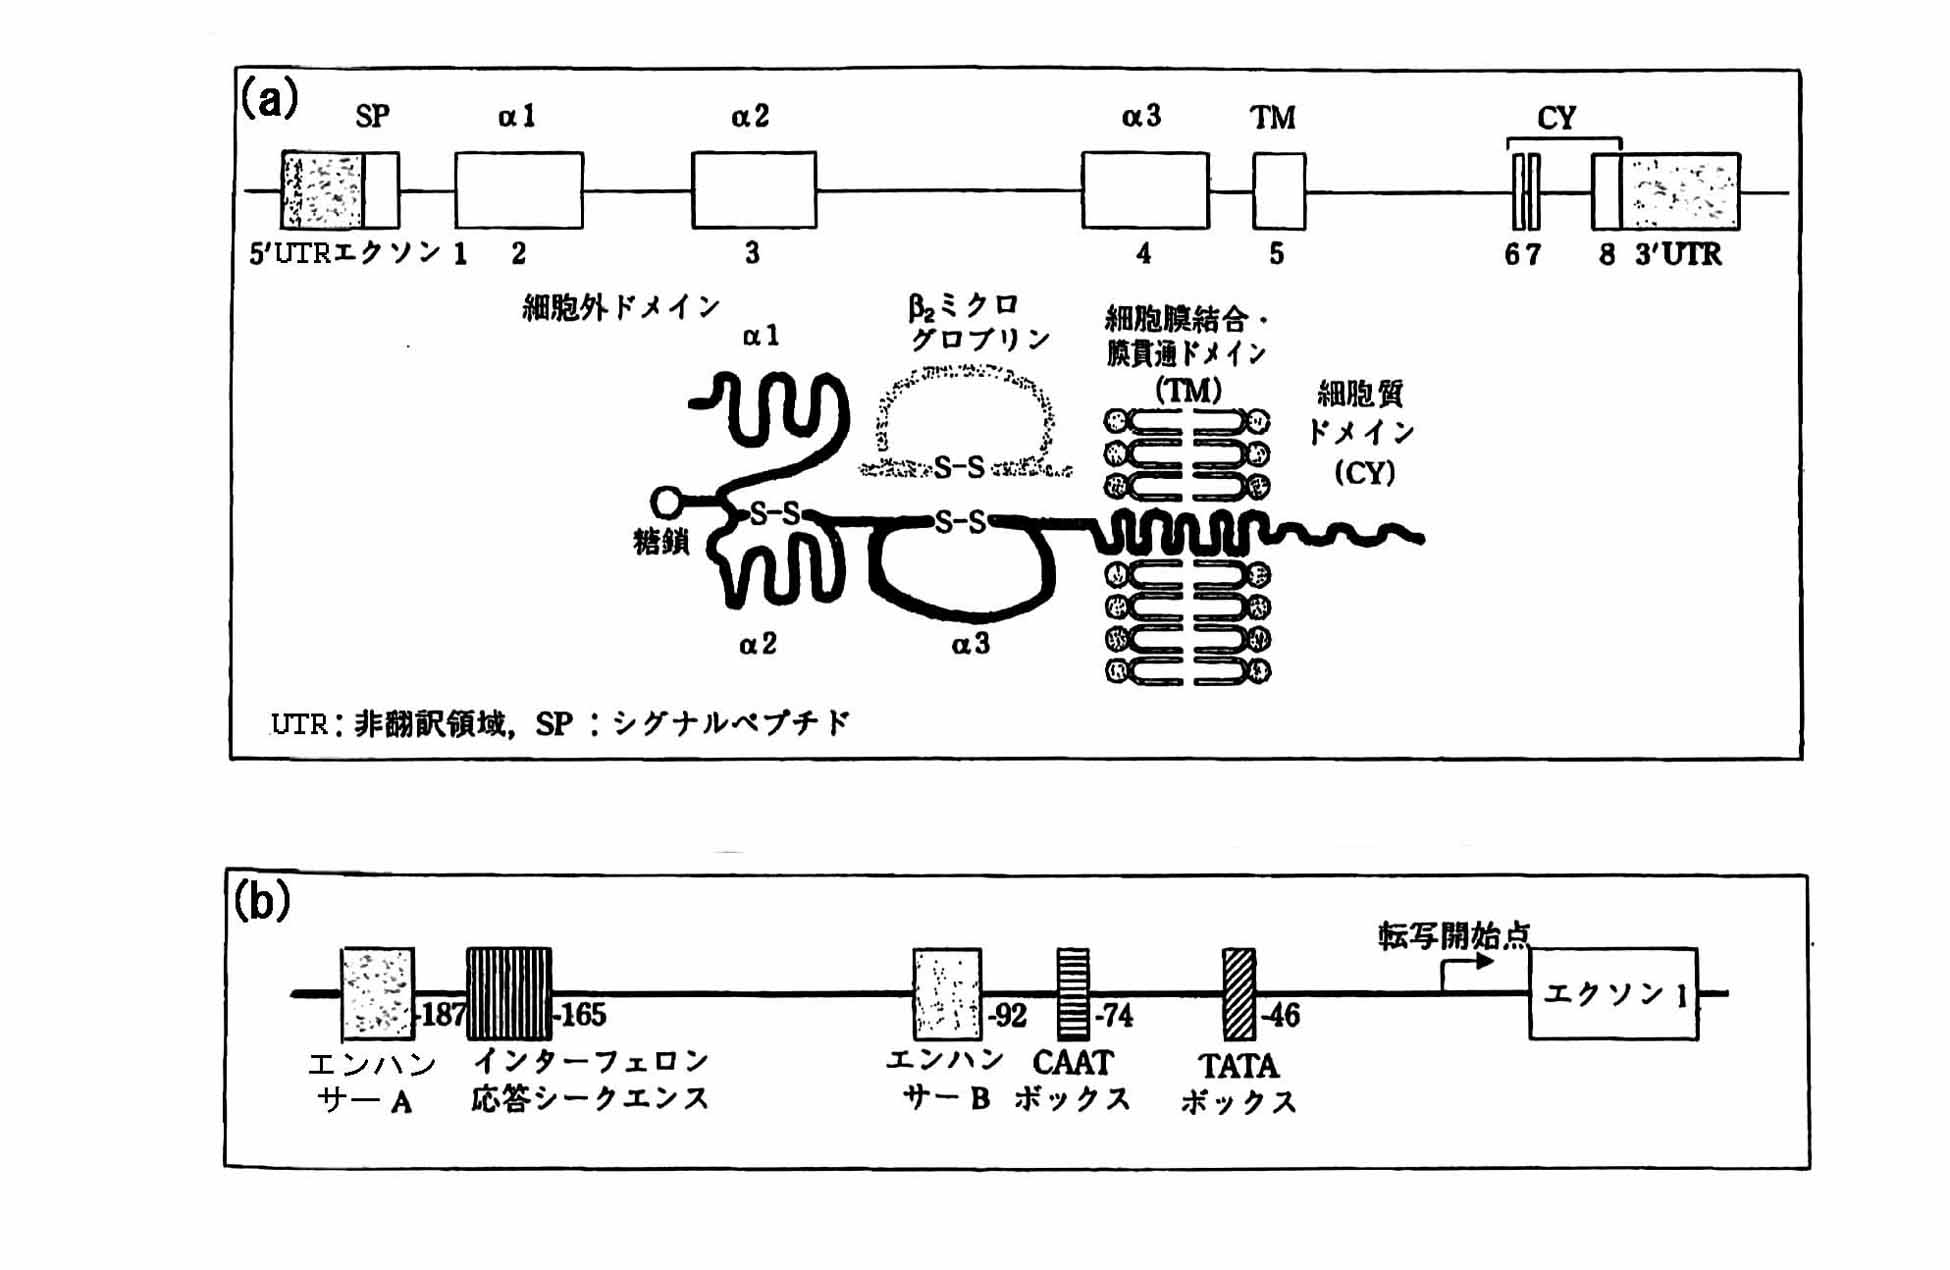 Patents                                                                                                                         Generate link with comments                           Hla遺伝子のdnaタイピング方法及びキット